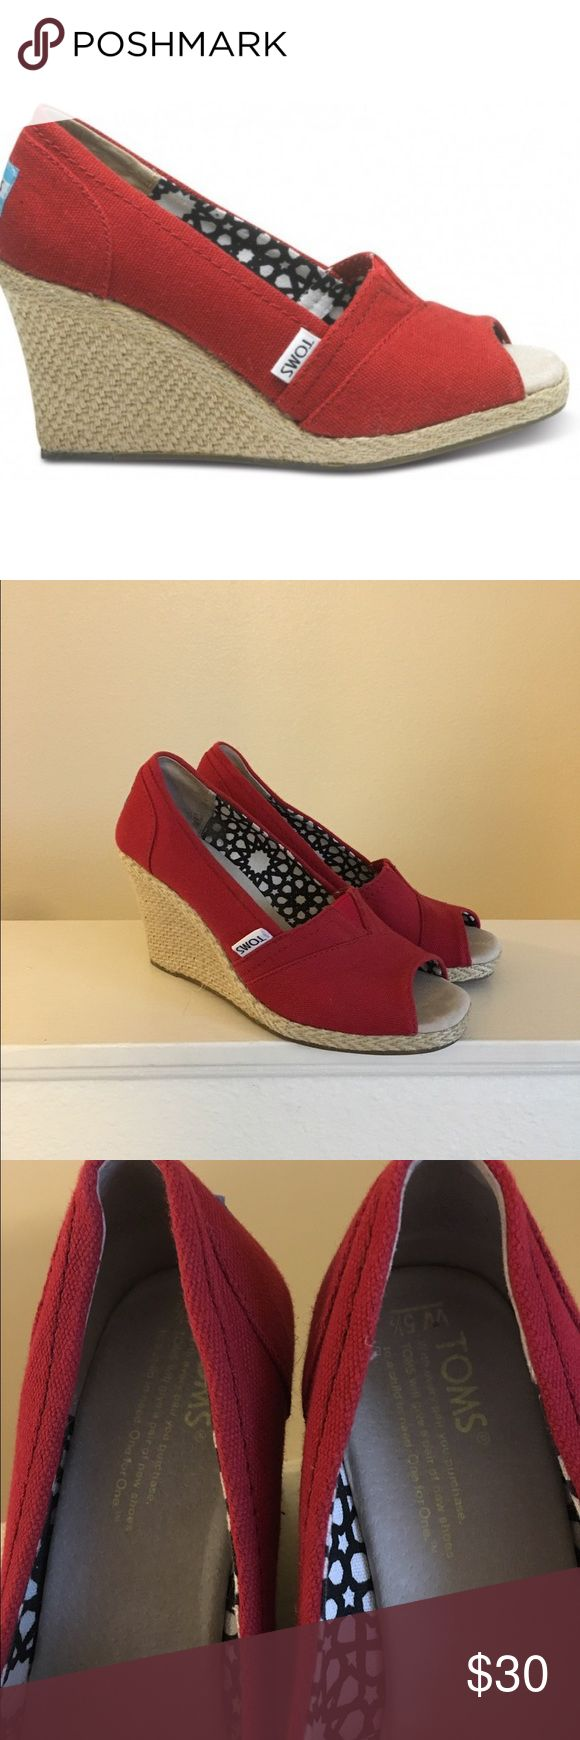 Red Tom's Wedges Size 5.5 red toms peep toe wedges with straw heel. Gently used, authentic. Open to offers; bundles discounted! TOMS Shoes Wedges